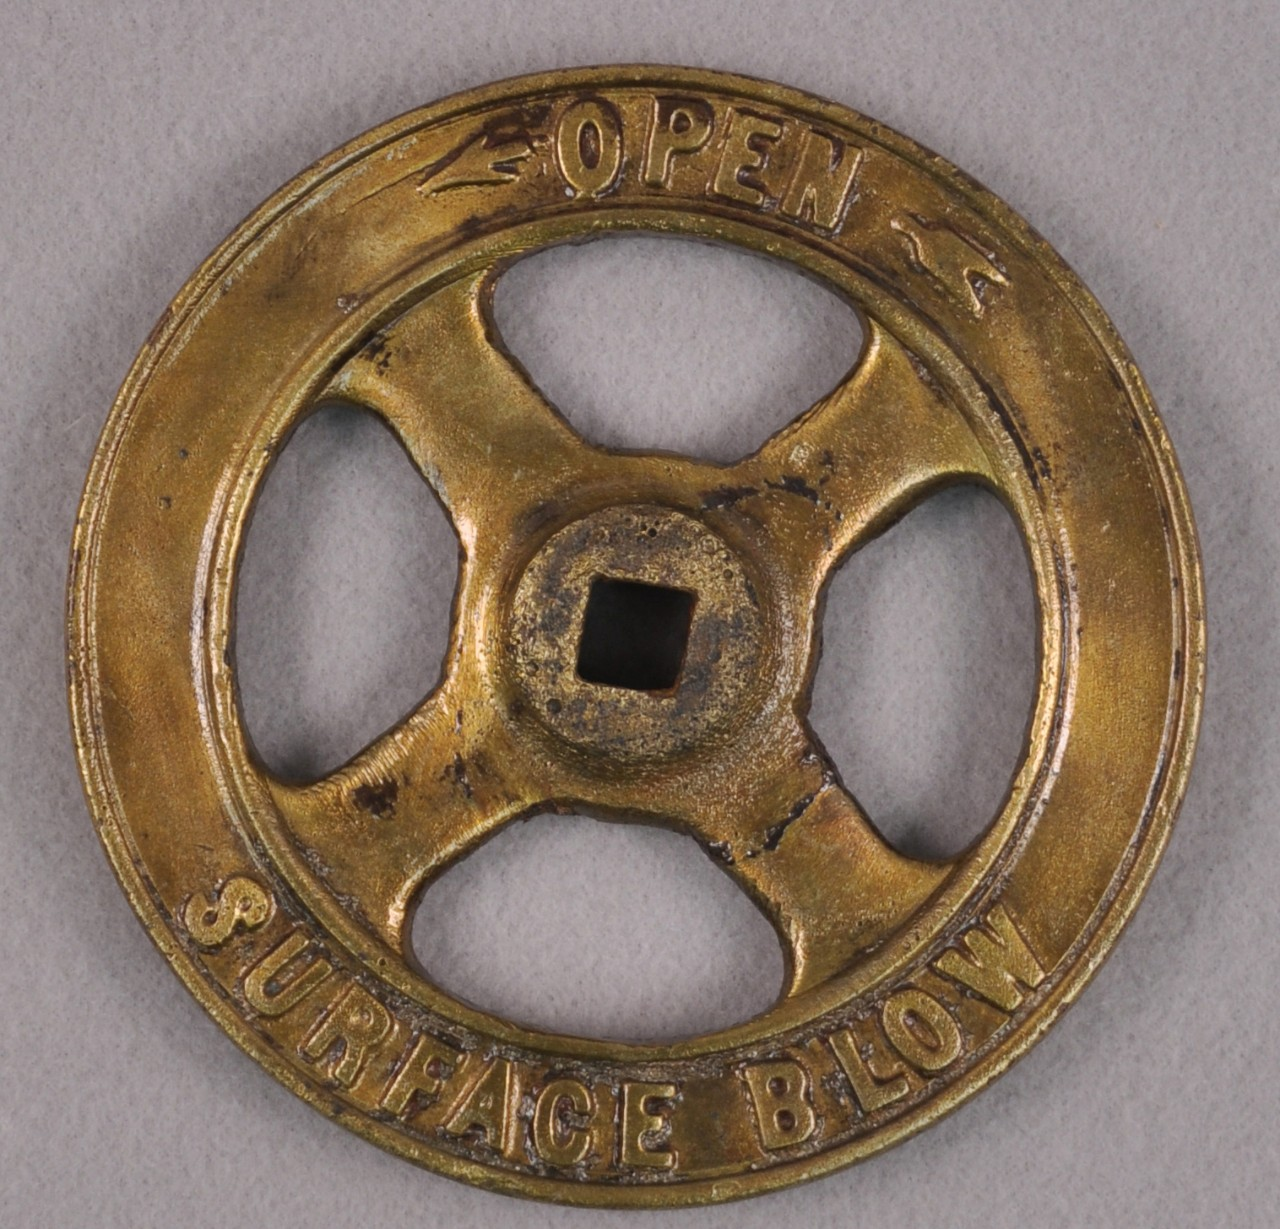 "<p>A brass valve wheel with a raised circle in the middle. A square hole is cut in the middle of this circle. At the top of the valve are the words ""OPEN"" with an arrow point left and the words at the bottom are the words ""SURFACE BELOW"".</p>"